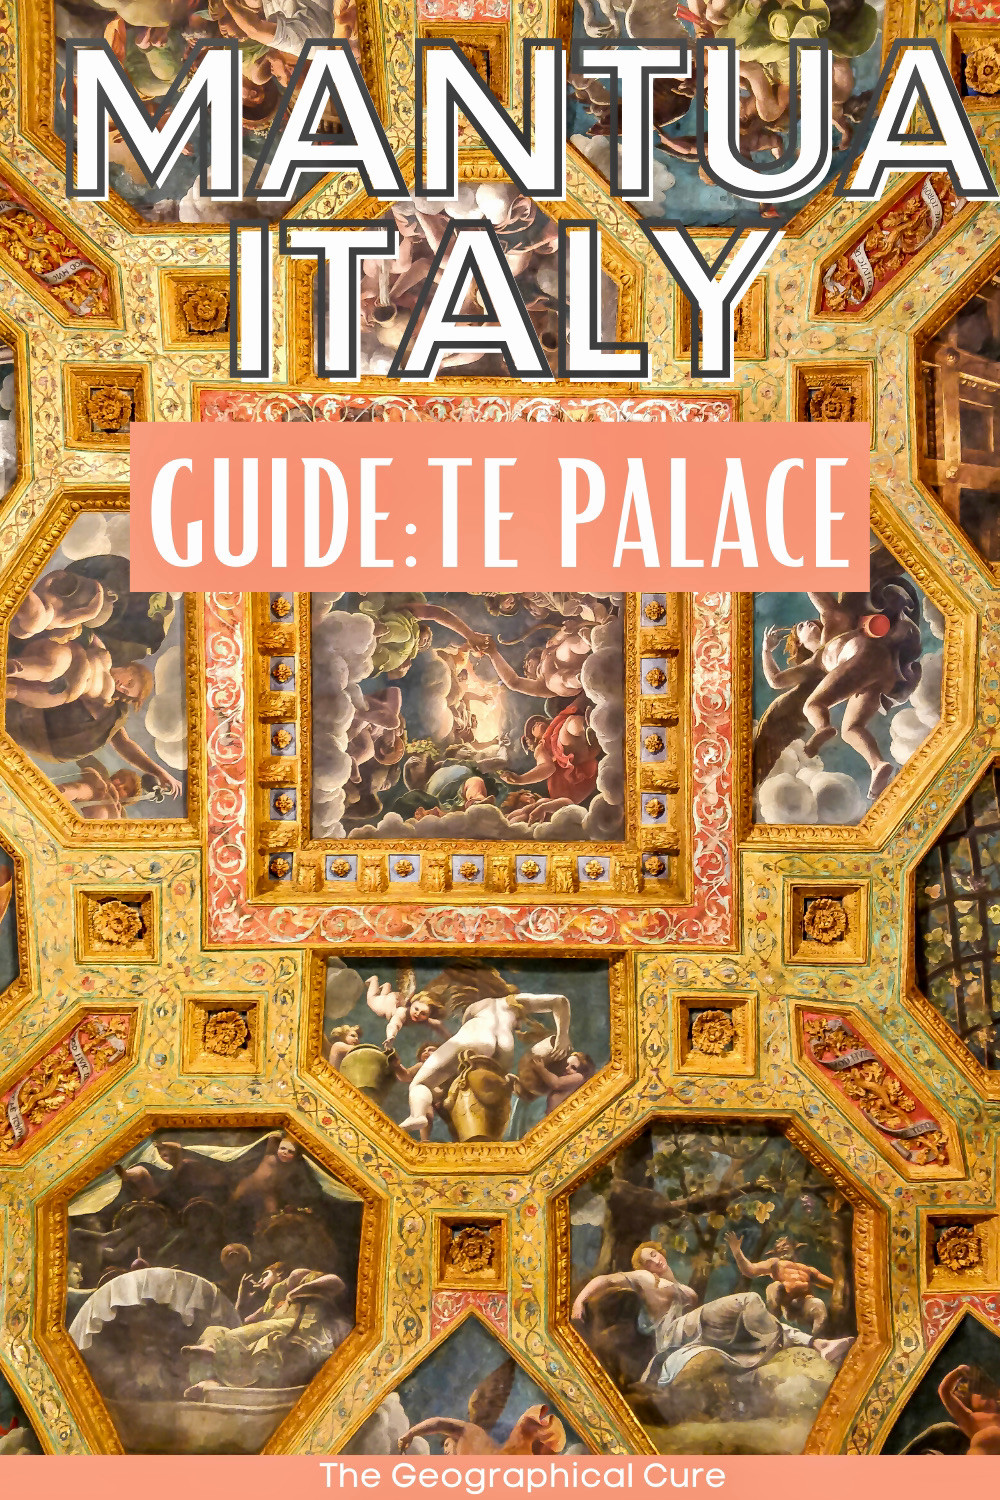 ultimate guide to the Palazzo Te in Mantua, a must visit destination in northern Italy